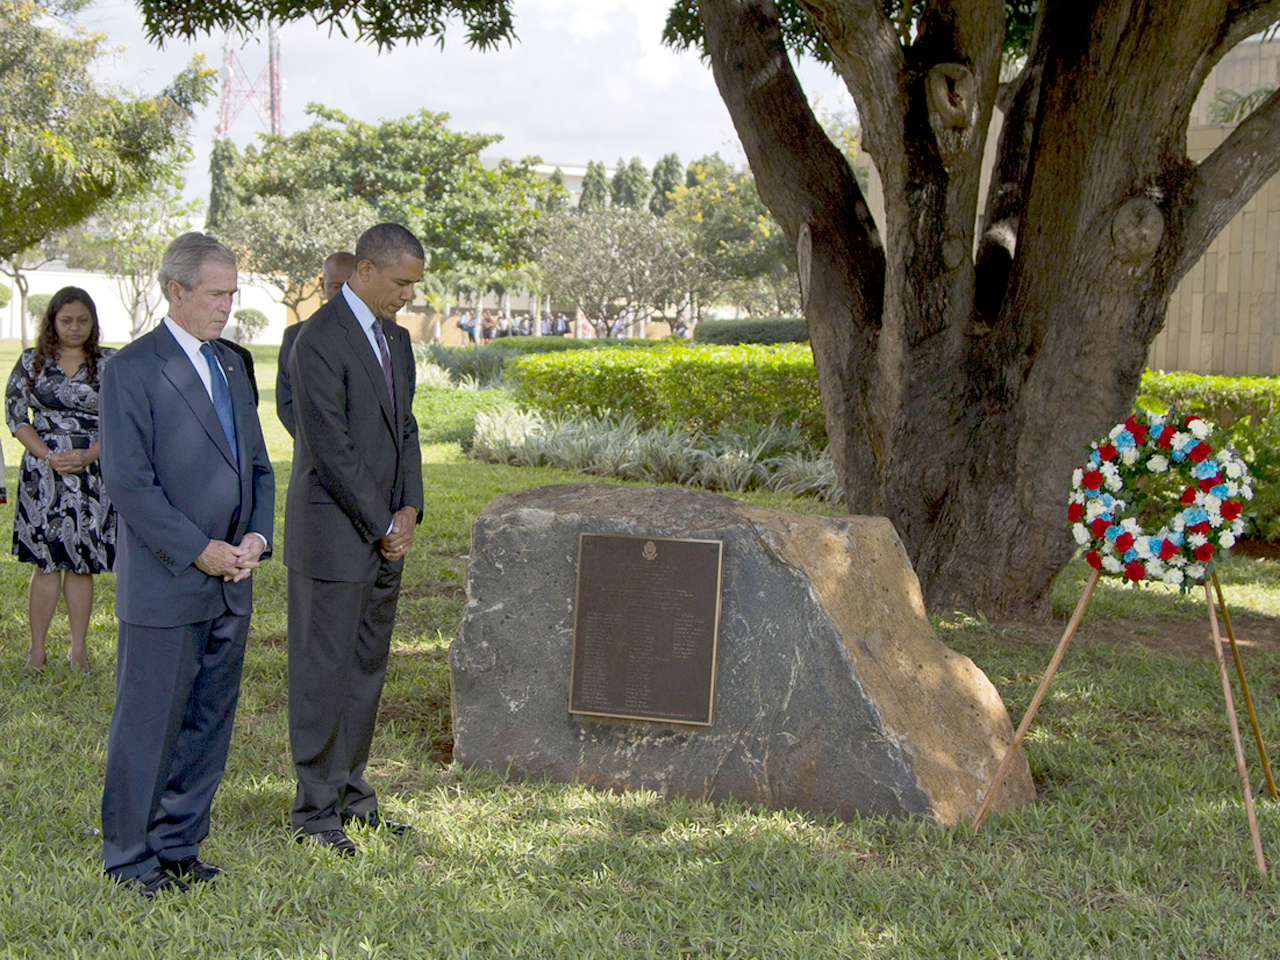 President Obama Joins George W Bush At Tanzania Memorial To End